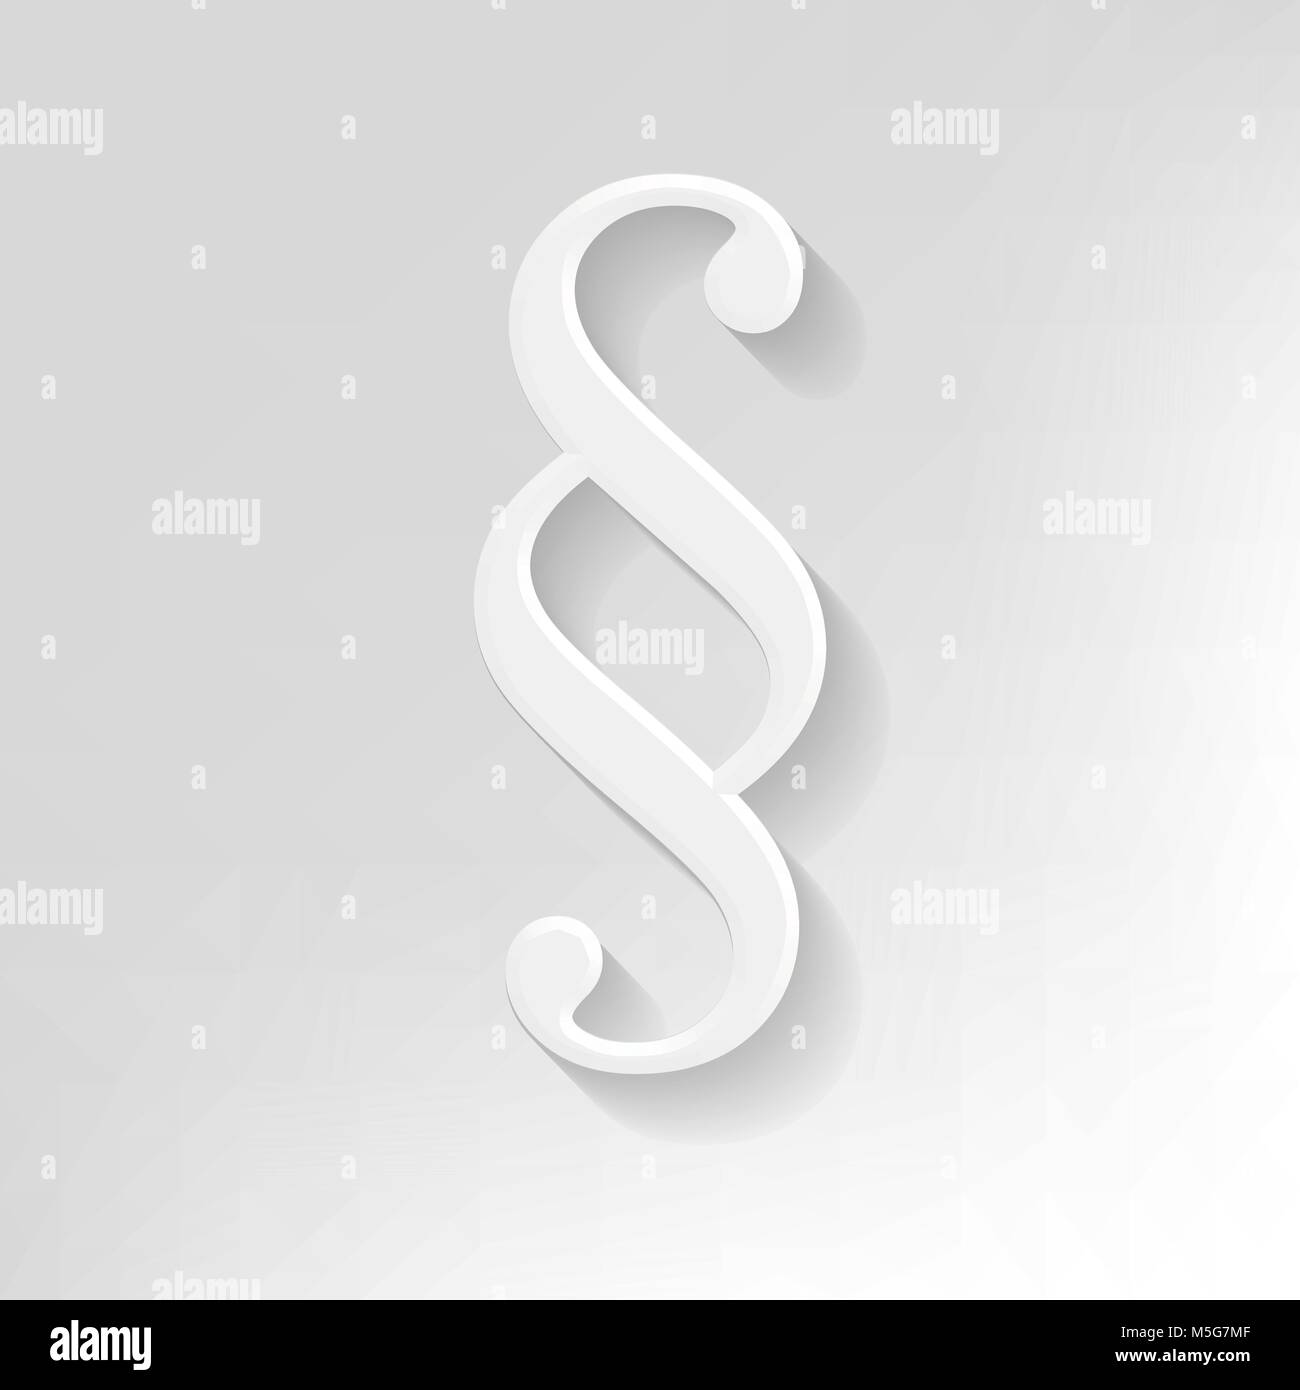 What is a paragraph symbol images symbol and sign ideas paragraph symbol stock photos paragraph symbol stock images alamy white paragraph symbol on gray vector illustration buycottarizona